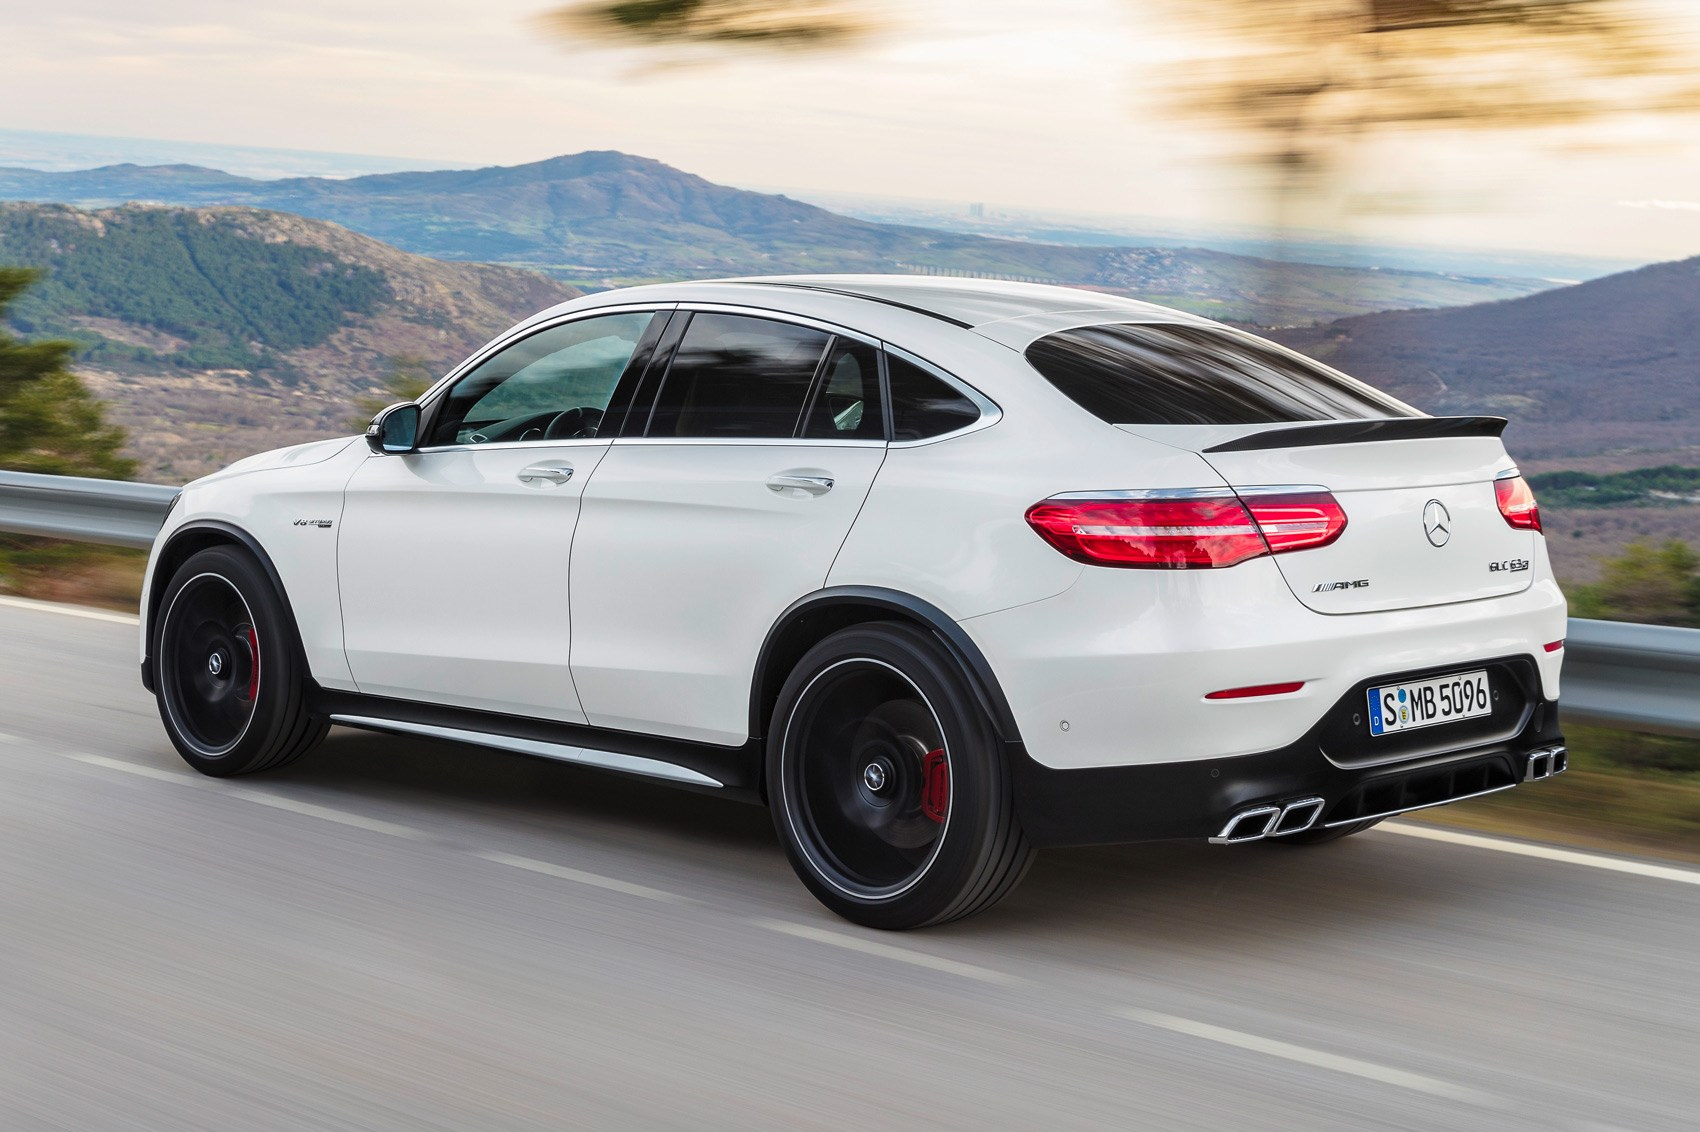 New Mercedes-AMG GLC 63: OTT SUV on sale now by CAR Magazine